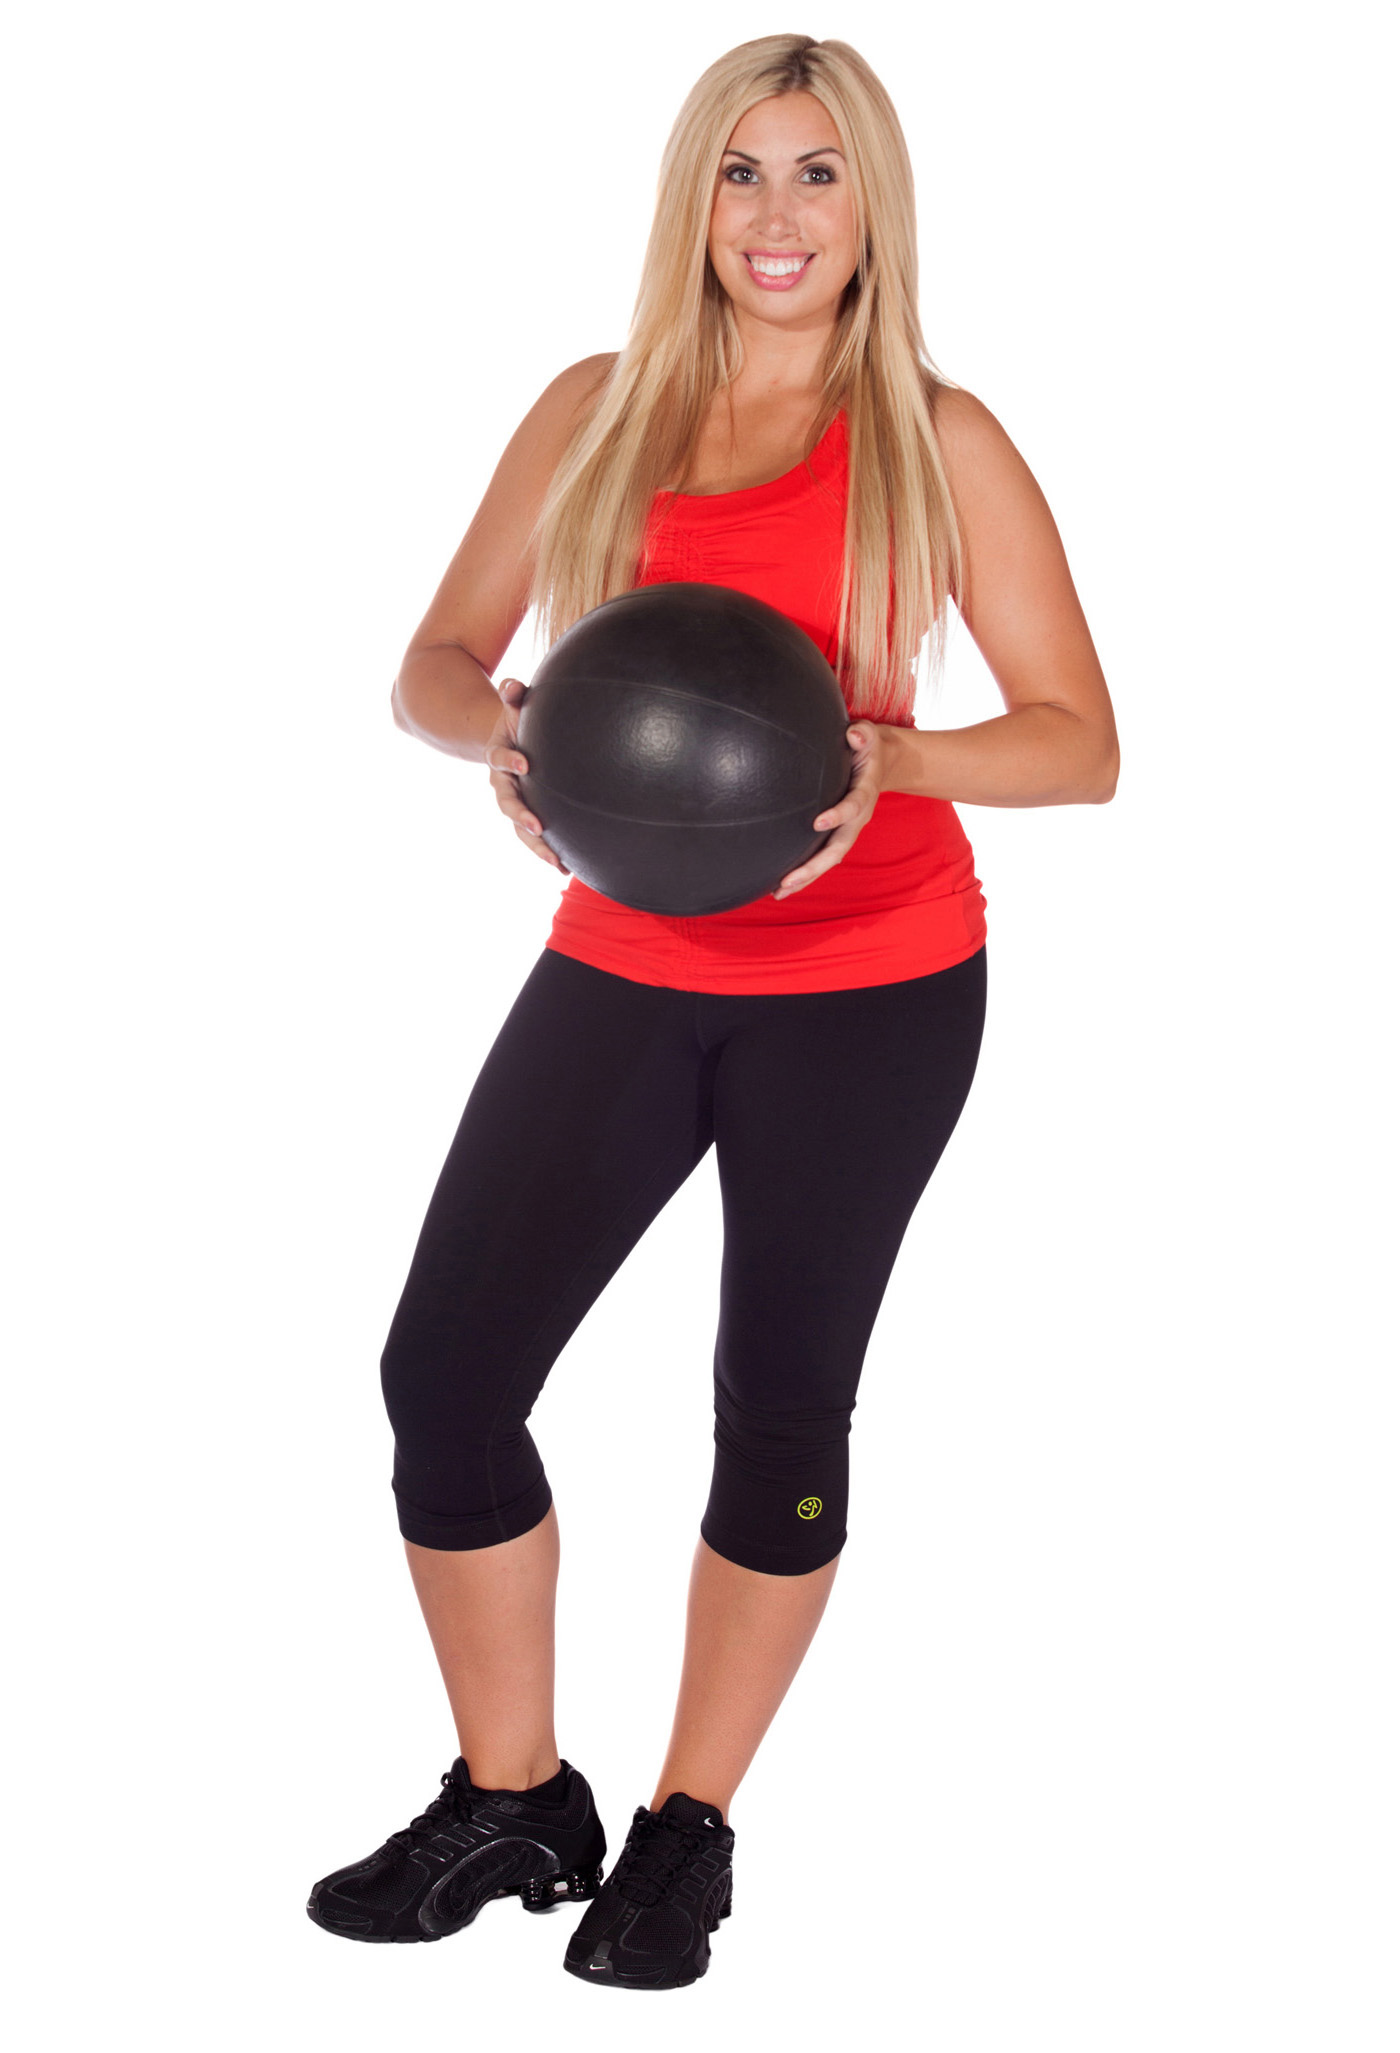 phoebe-flannagan-with-ball-40-below-fitness-center-fairbanks-ak-151-web.jpg